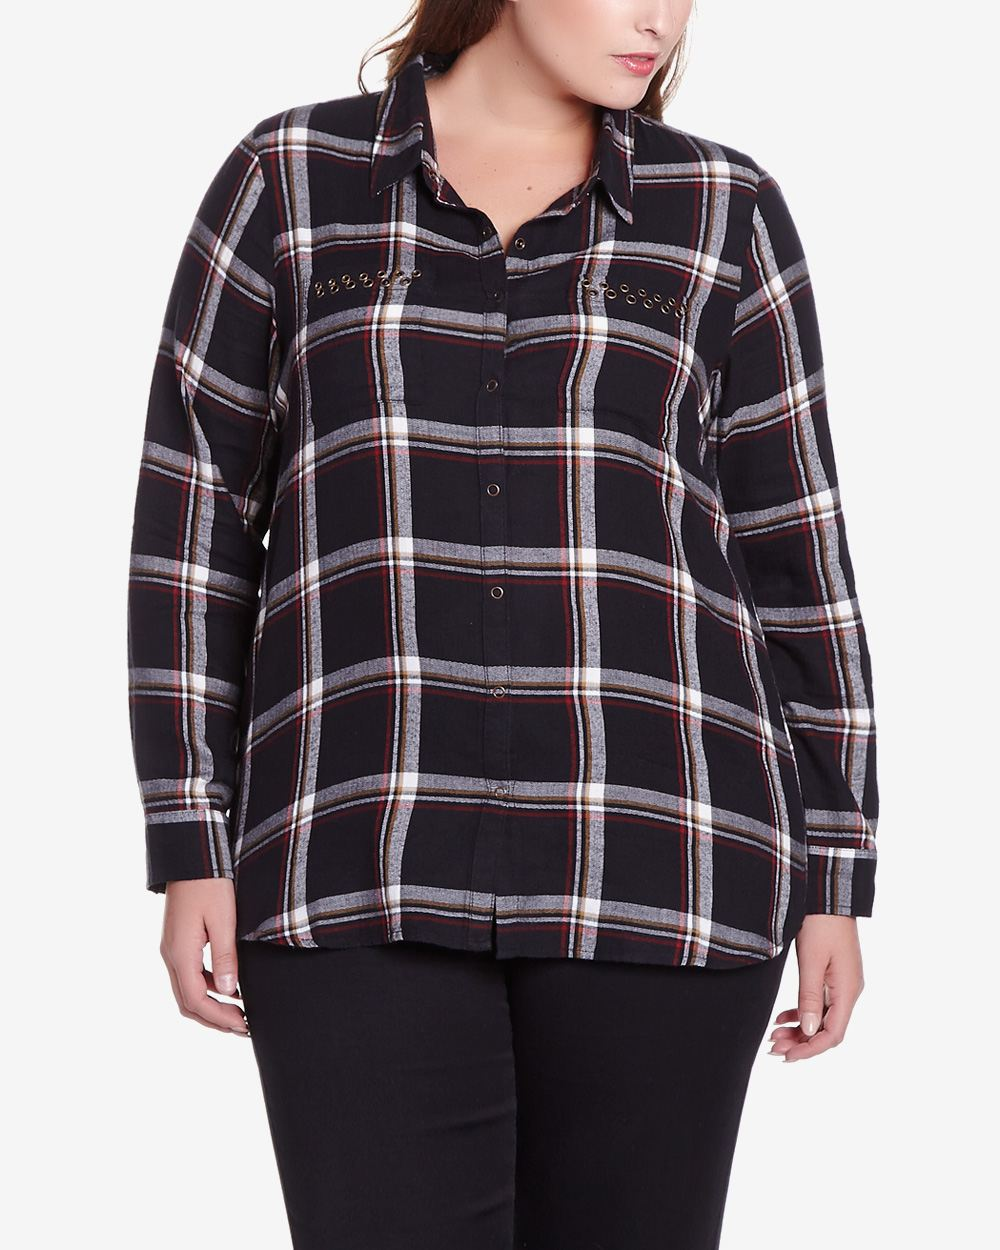 Plaid Shirts for Women Plus Size Tops V Neck Roll Tab Sleeve Blouse. More Choices from $ 32 out of 5 stars Sexyshine. Women's Patchwork Long Sleeve Plaid Checkered Blouse Suede Elbow Cardigan Open Front Stitching Top $ 11 out of 5 stars 2. Karlywindow.